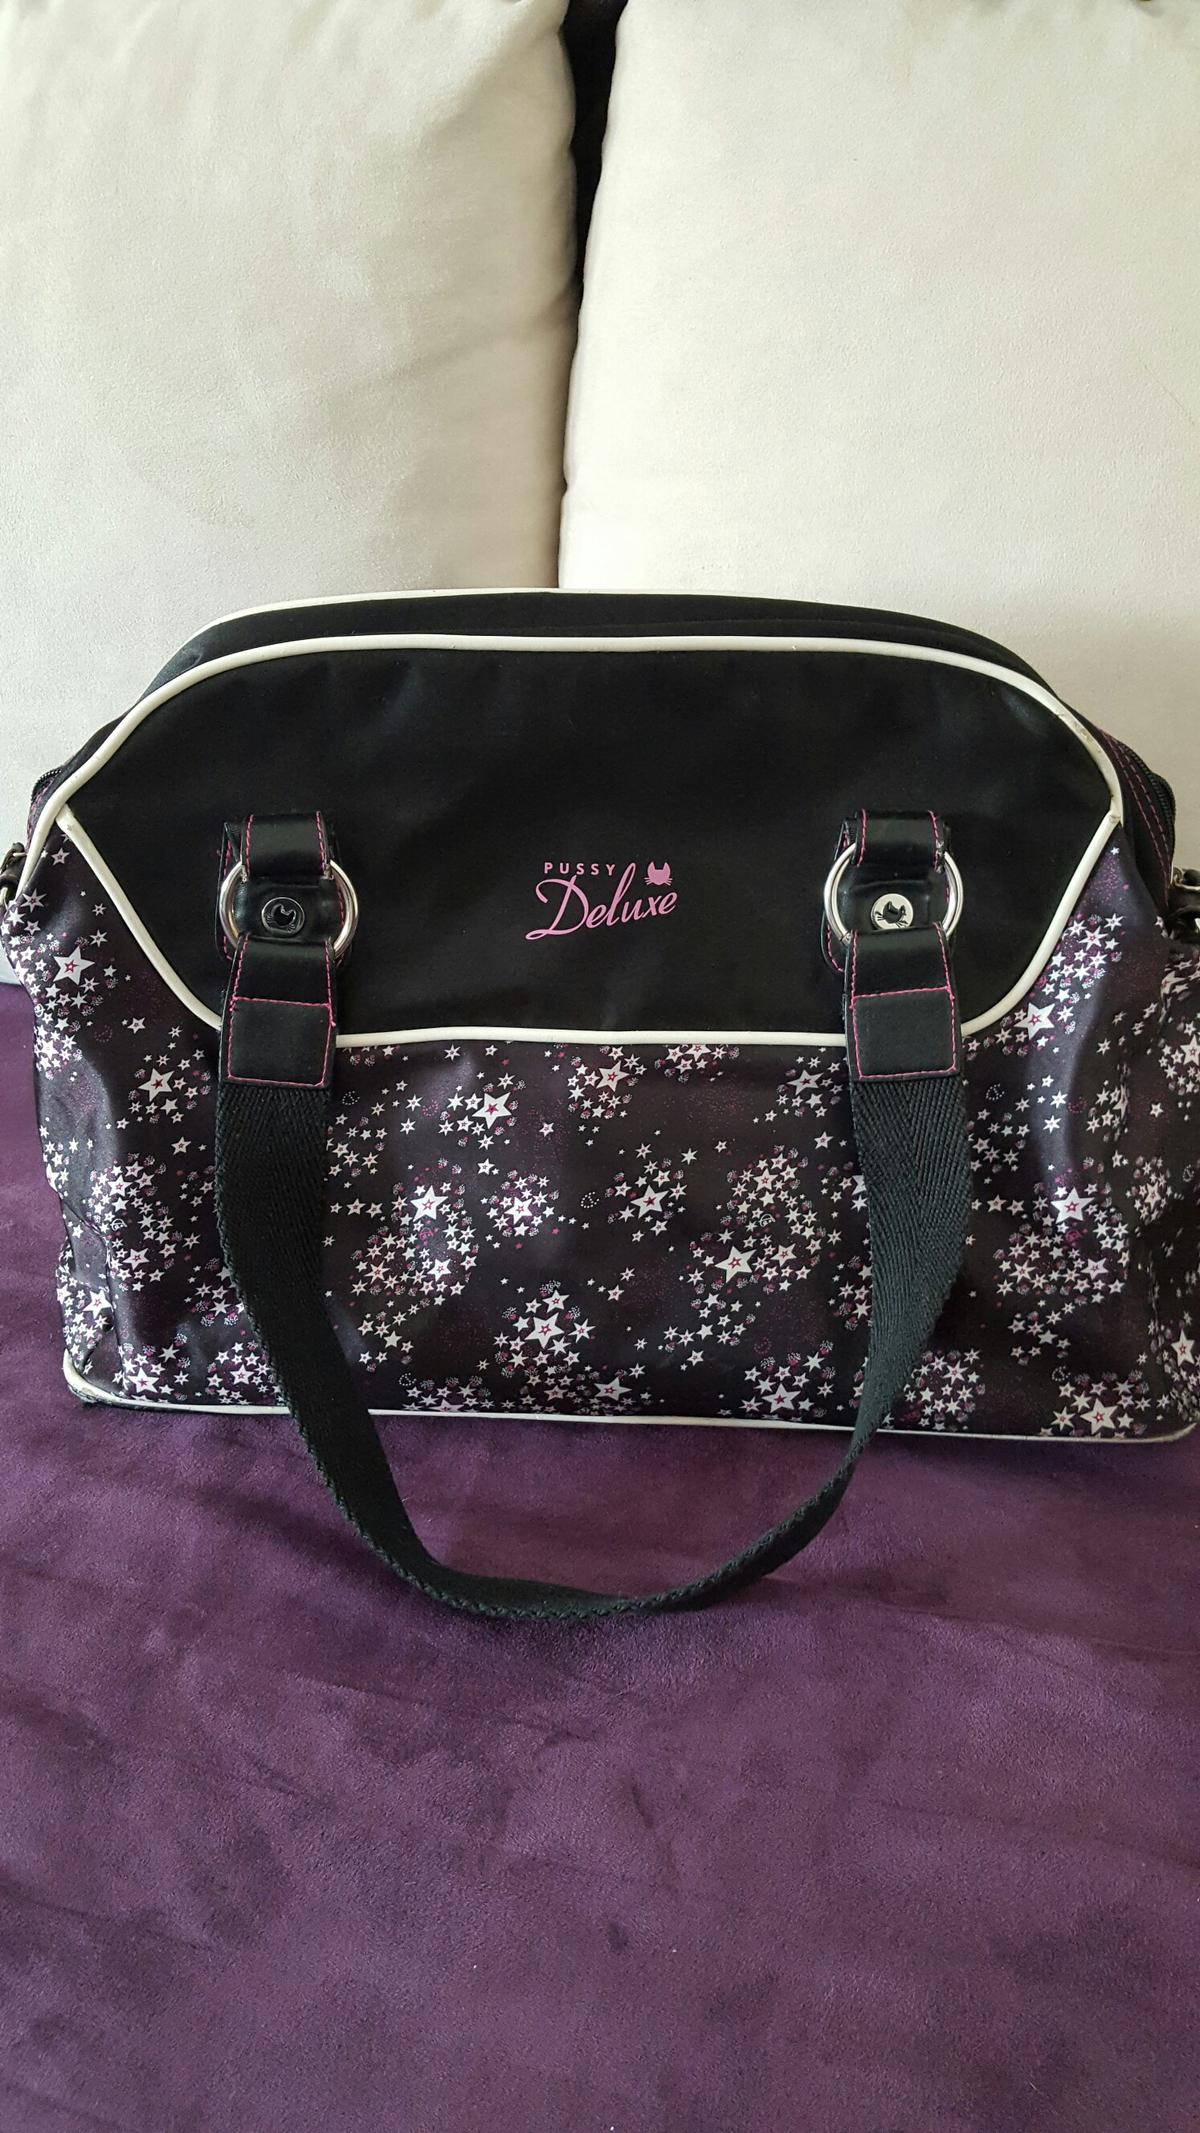 Pussy Deluxe Tasche Sterne